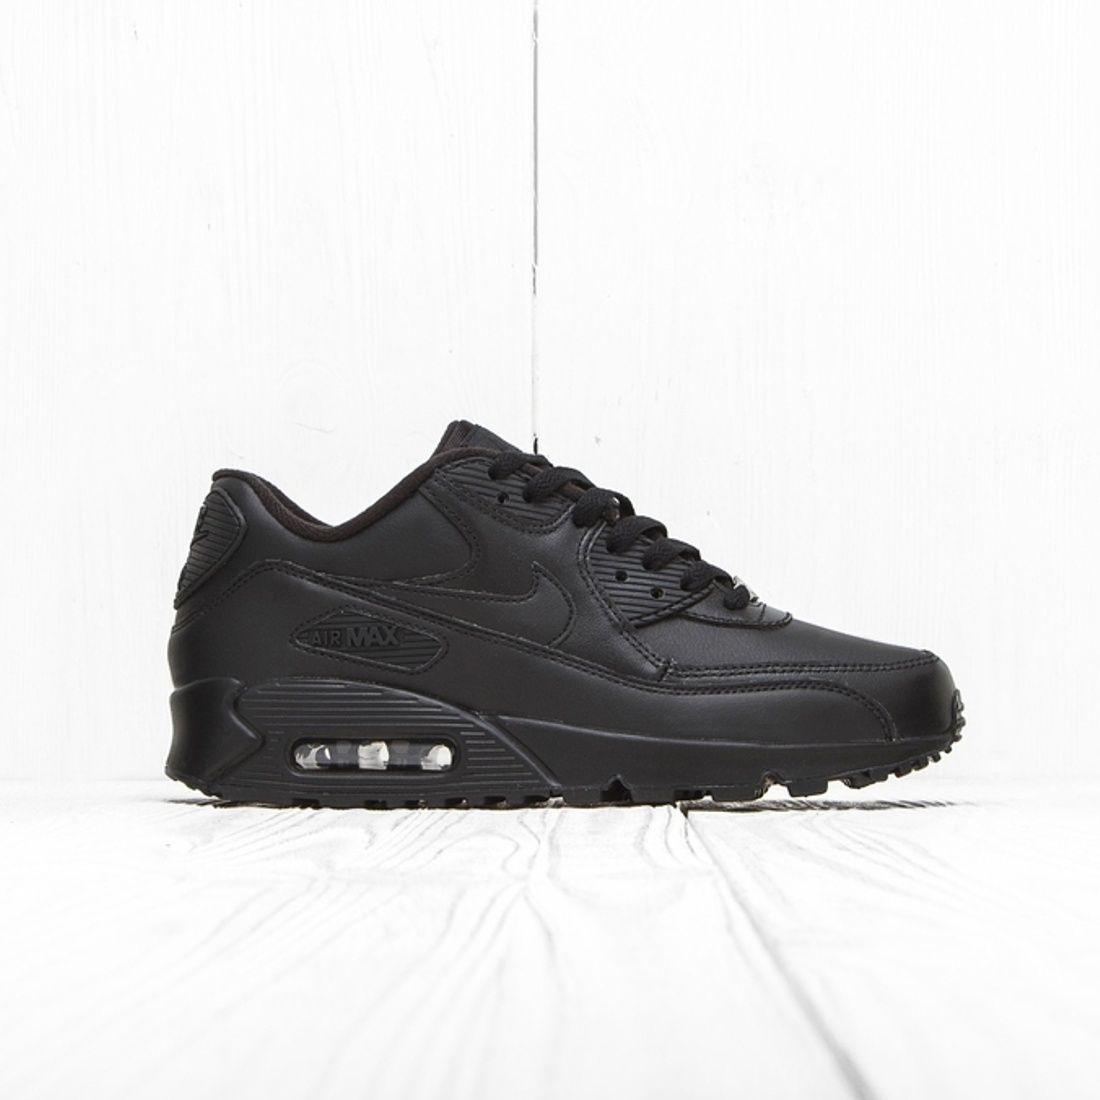 Nike Nike Air Max 90 Leather Triple Black 302519 001 10 Us